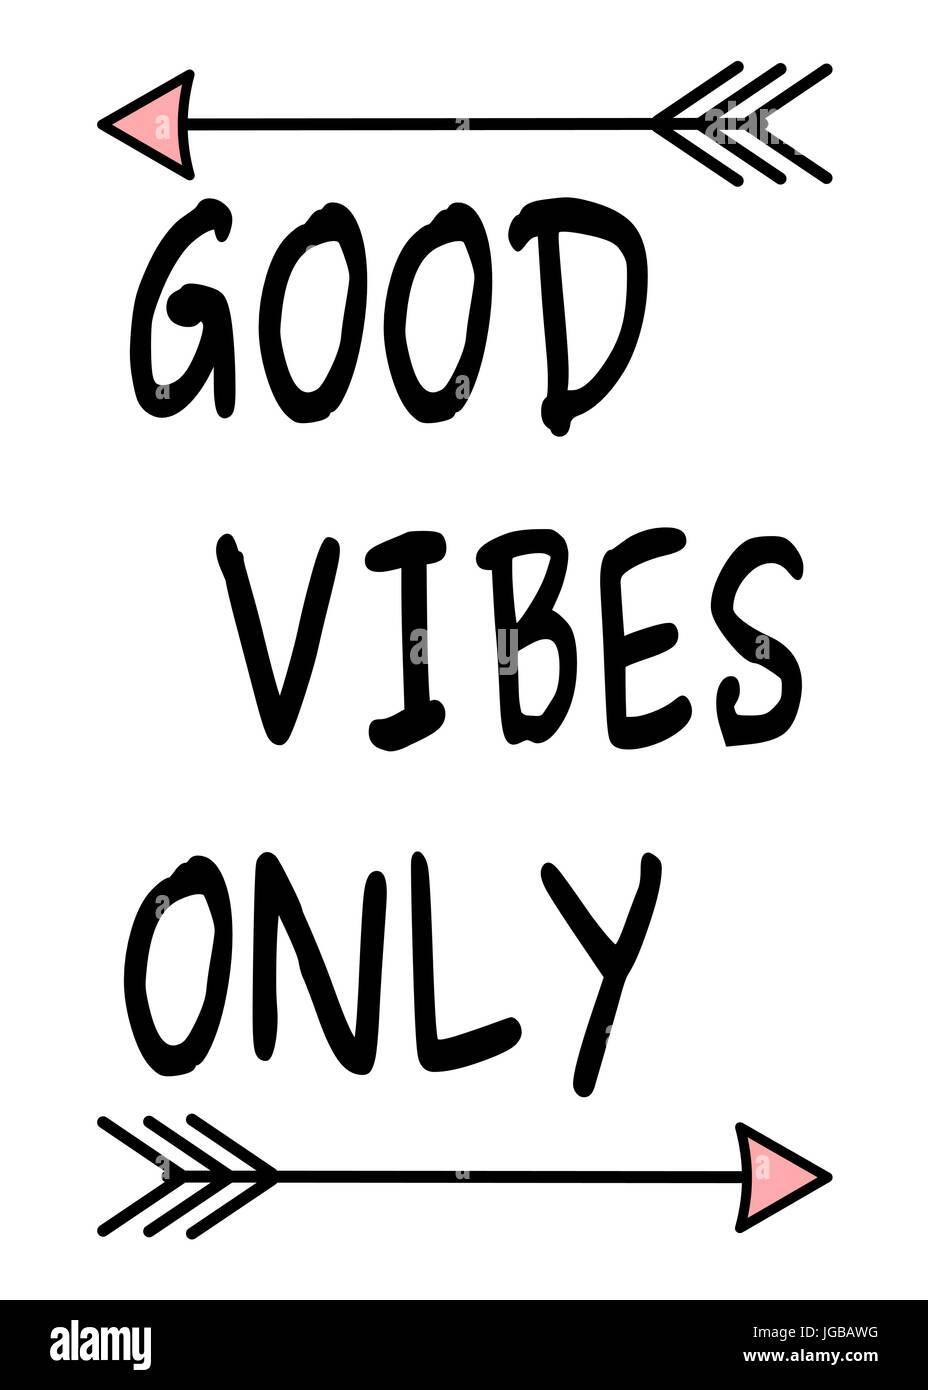 Good vibes only black white pink inspirational vector quote background illustration